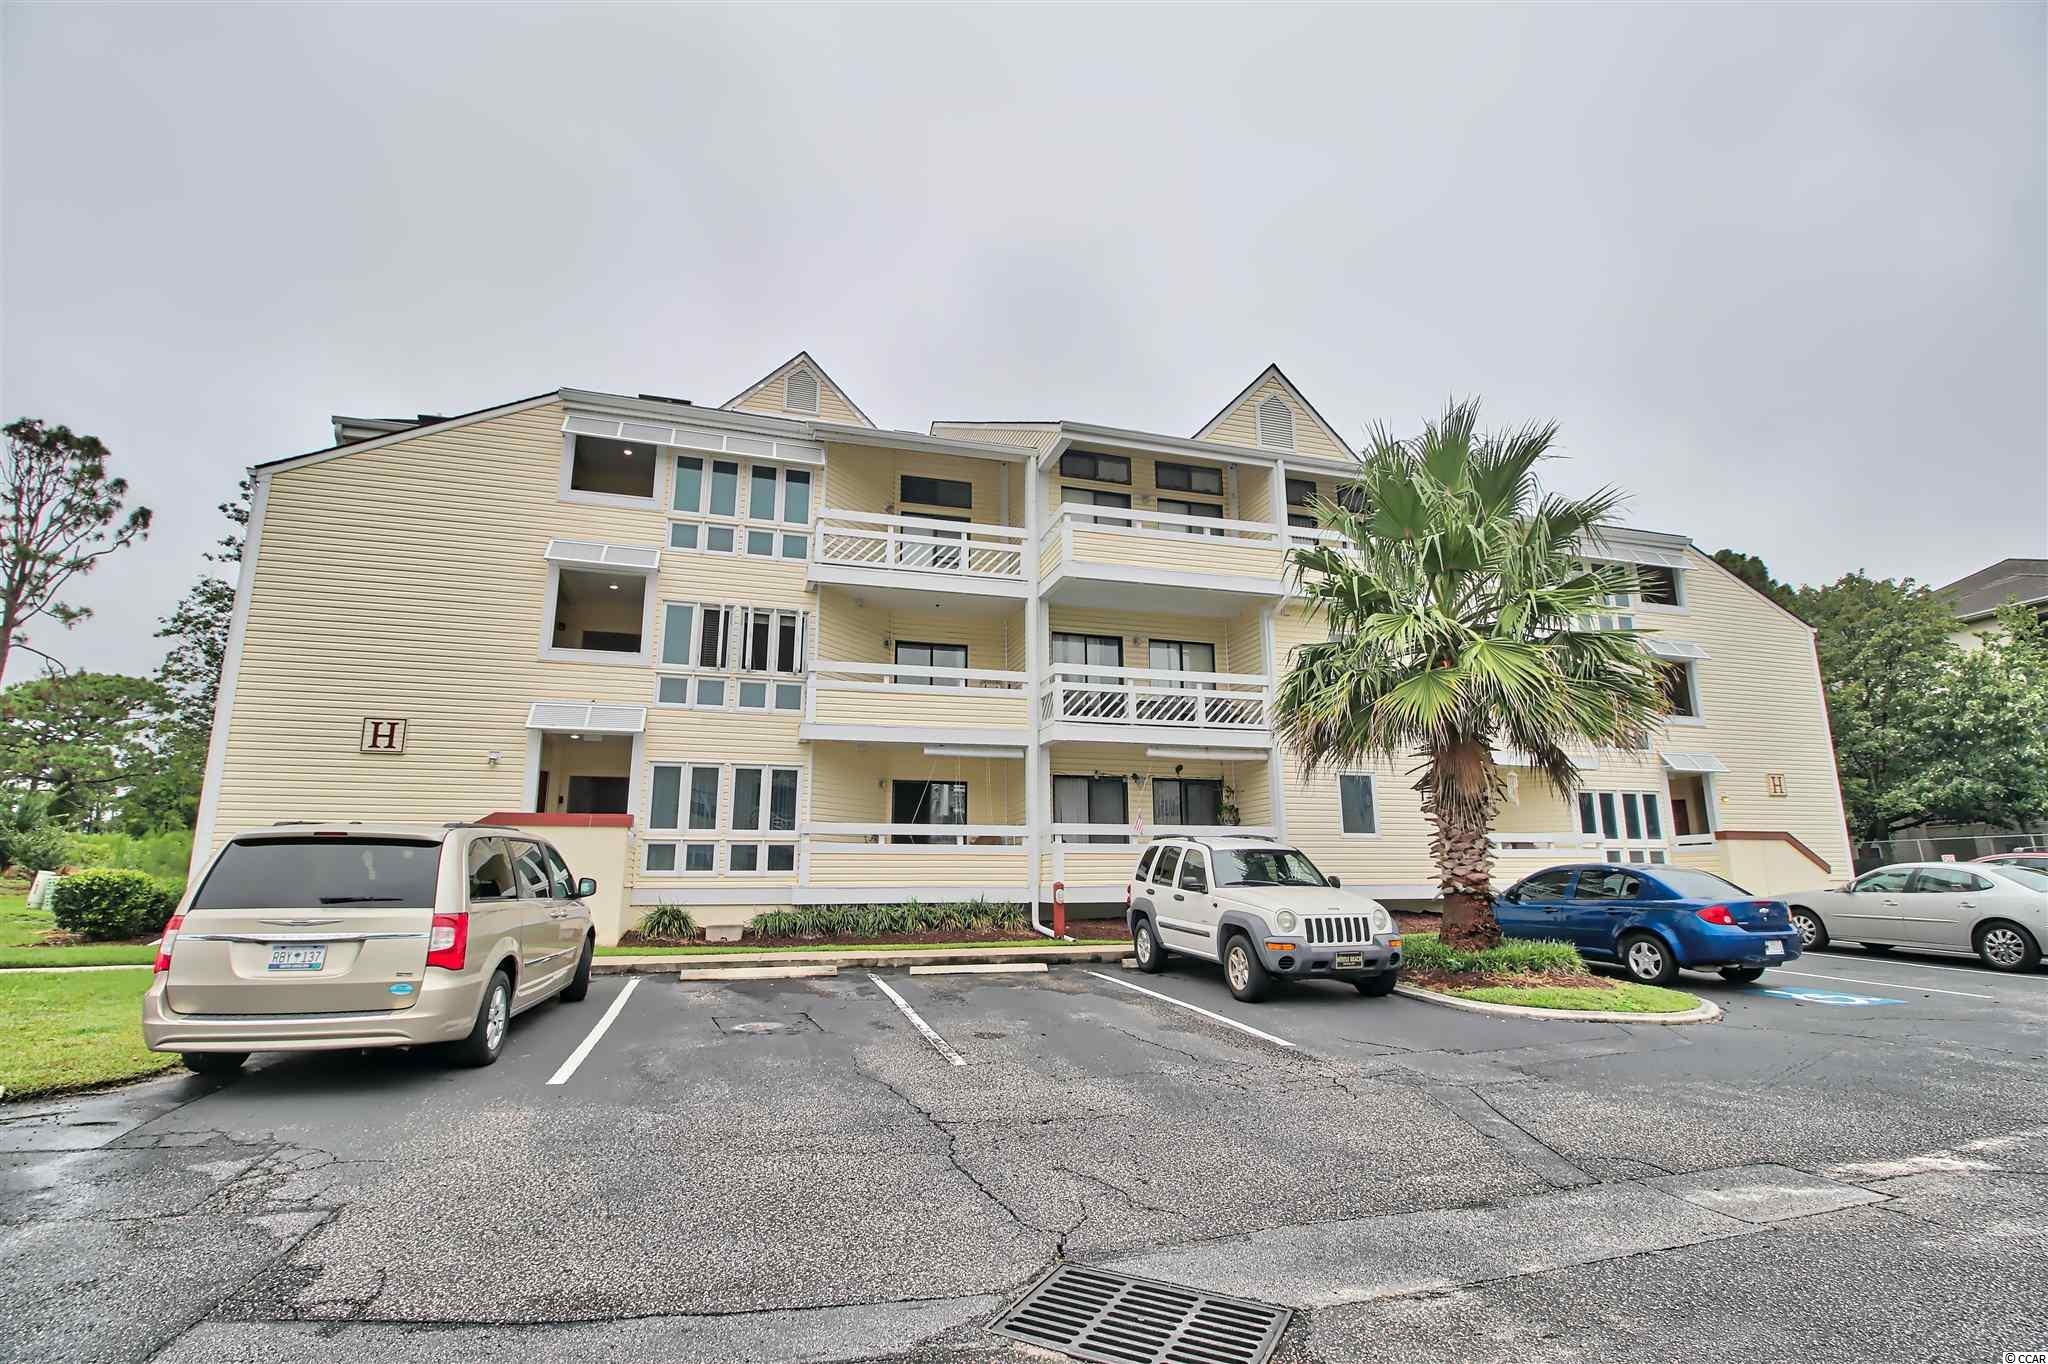 Come see this beautiful 2 bedroom 2 full bathroom furnished condo in the North Myrtle Beach Golf and Tennis community! Huge walk-in closet in the master bedroom upstairs. Vaulted ceilings and beautiful laminate wood flooring throughout makes this condo feel open and spacious with tons of natural light coming in. The community has two tennis courts and a outdoor pool! Recliner and barstools do not convey.